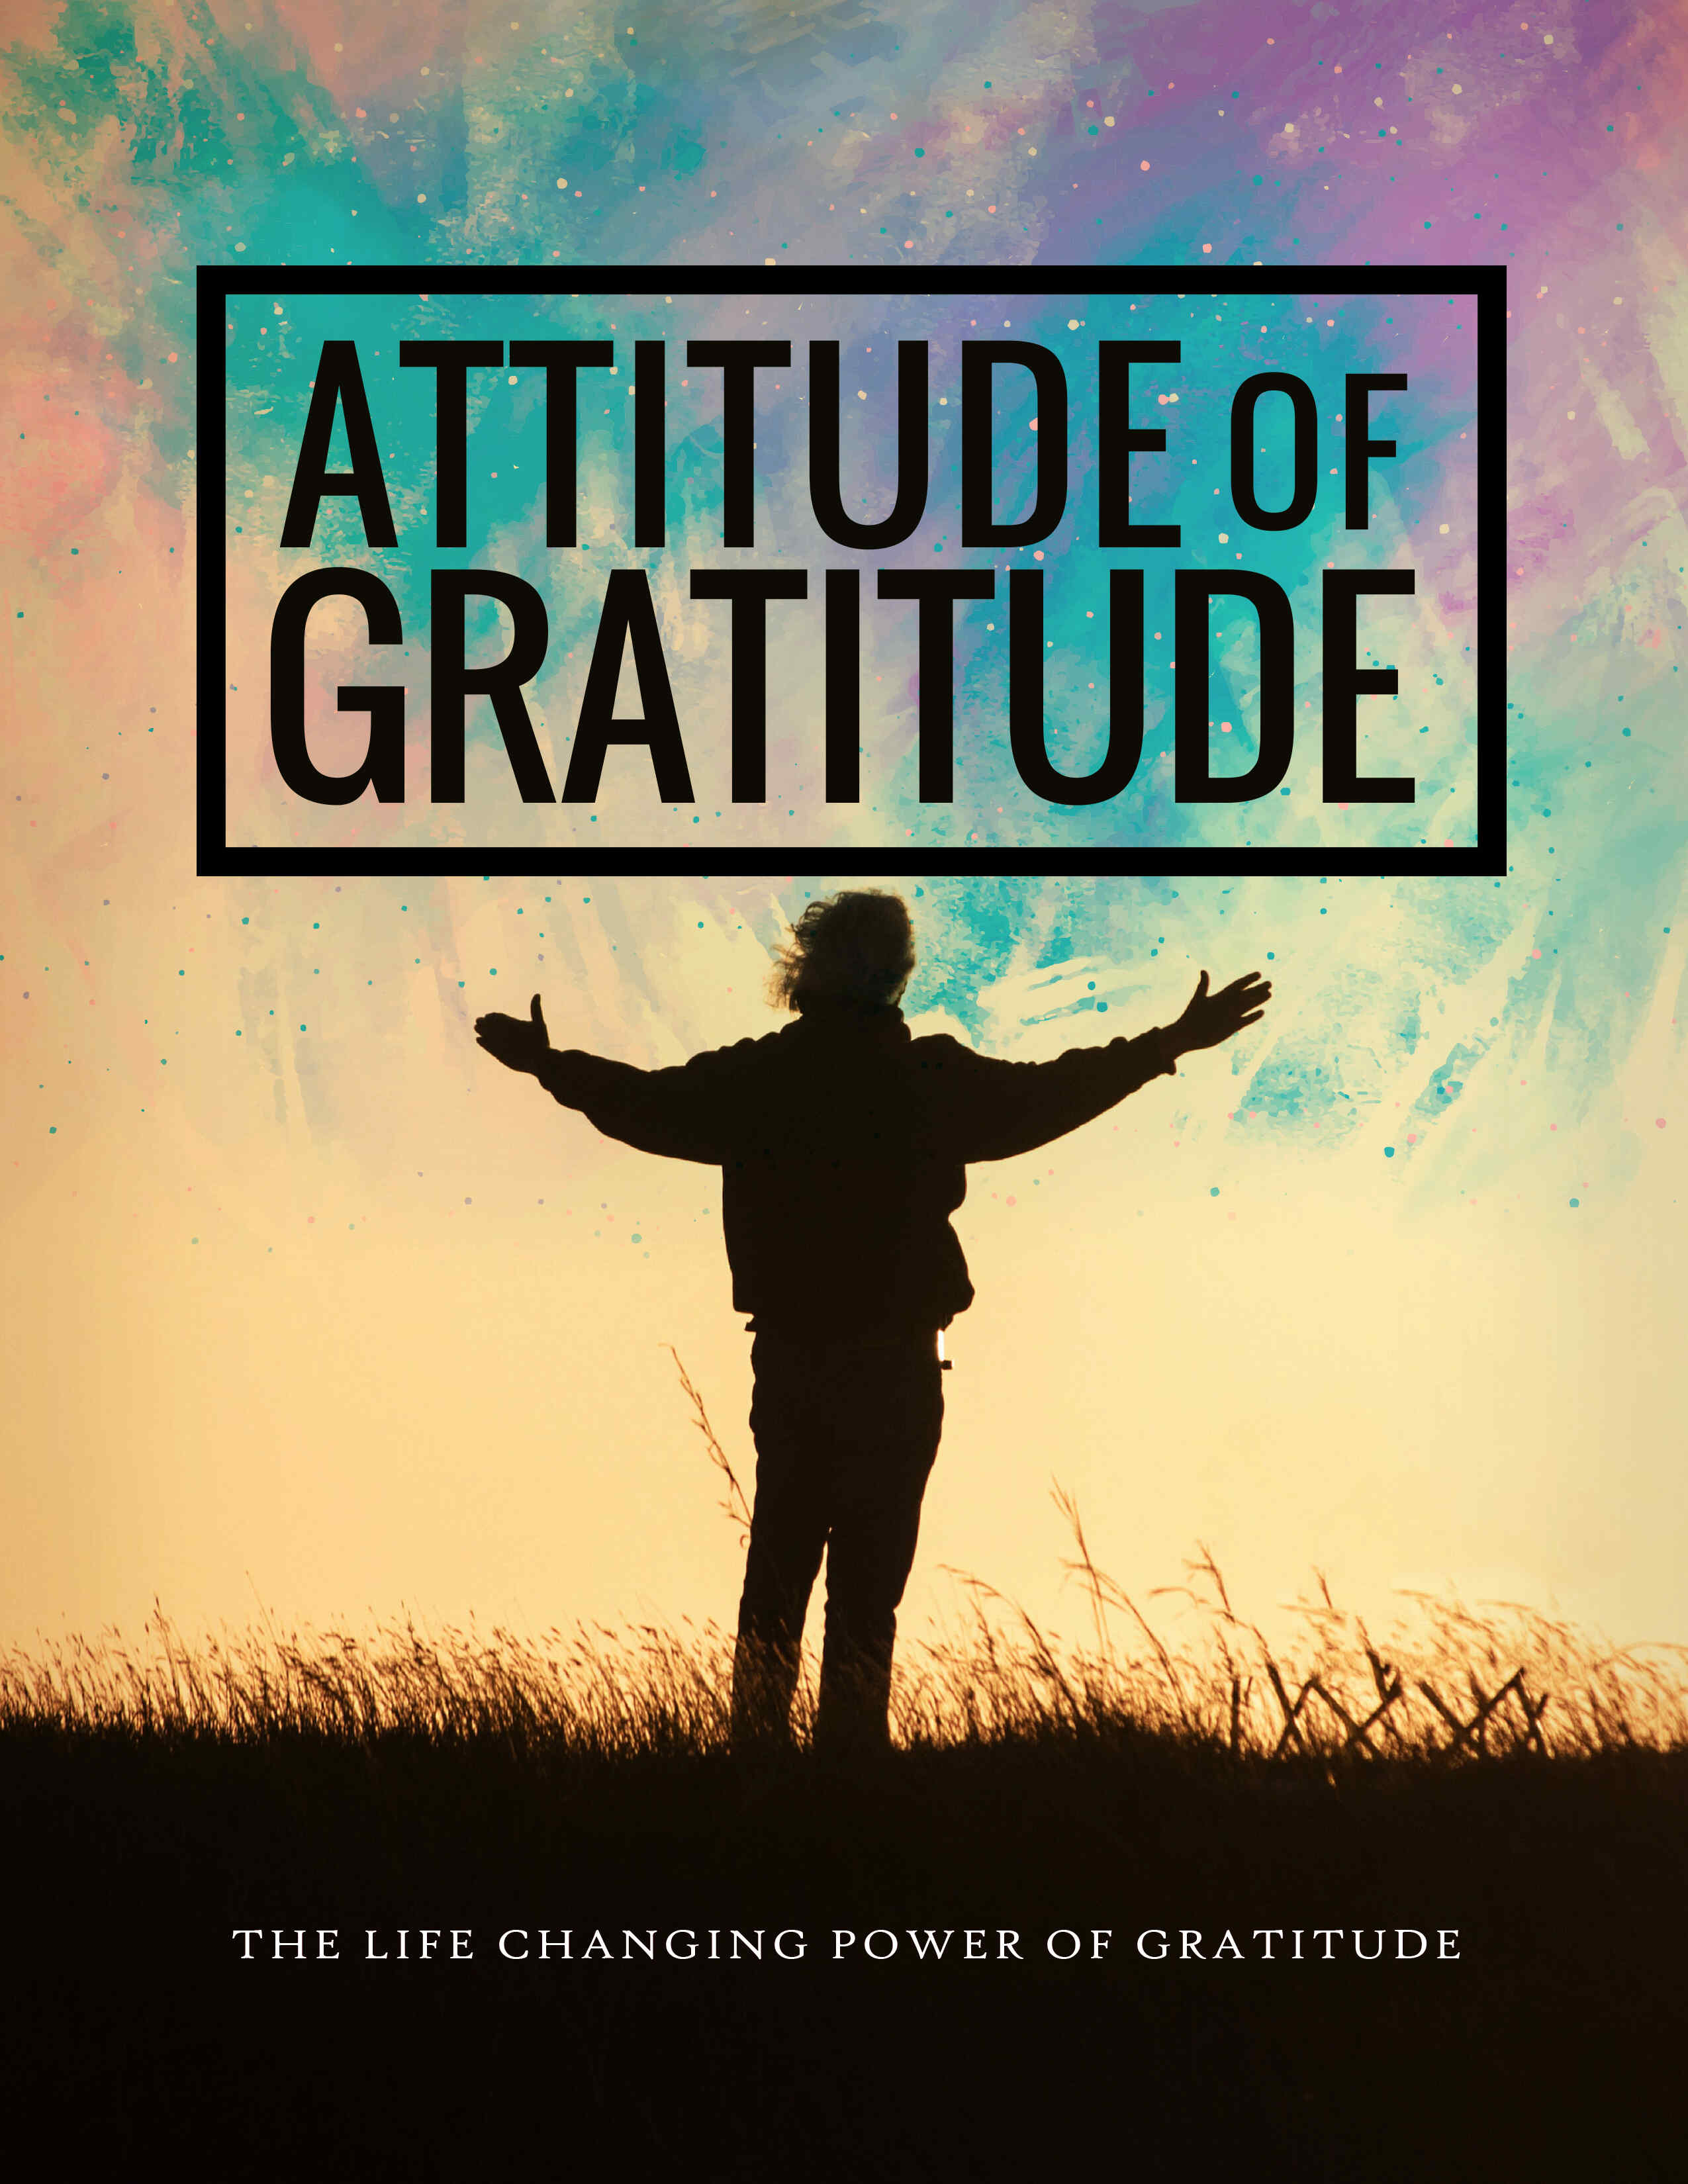 Attitude Of Gratitude (The Life Changing Power Of Gratitude) Ebook's Ebook Image